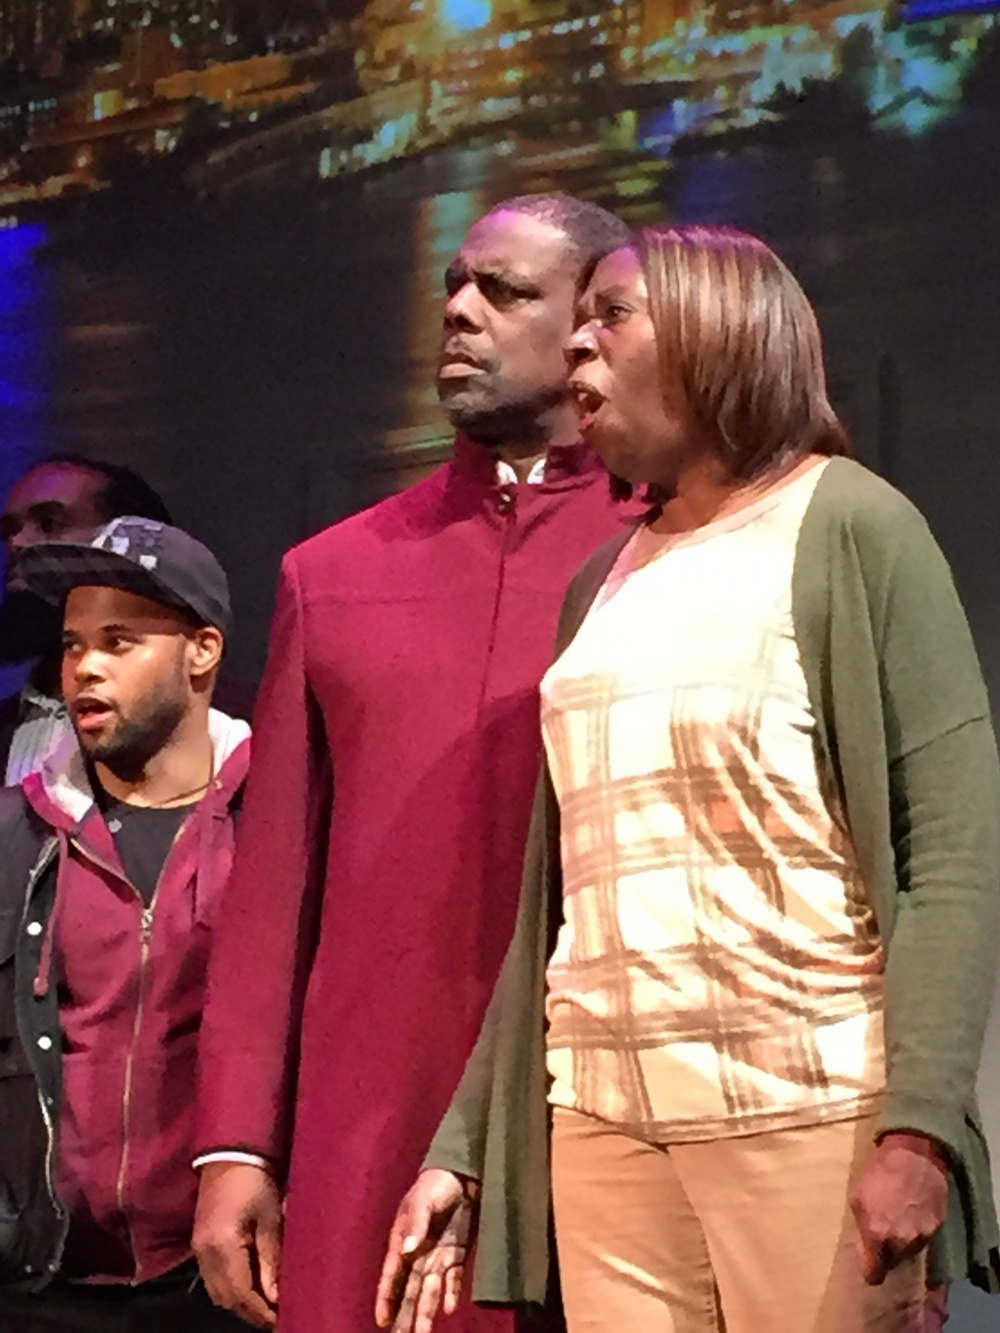 """Shame, Sherman, shame!""   Samuel McDonald as Marcus; Kevin Maynor as the Reverend Bacon; Adrienne Alexander as Mrs. Lamb"